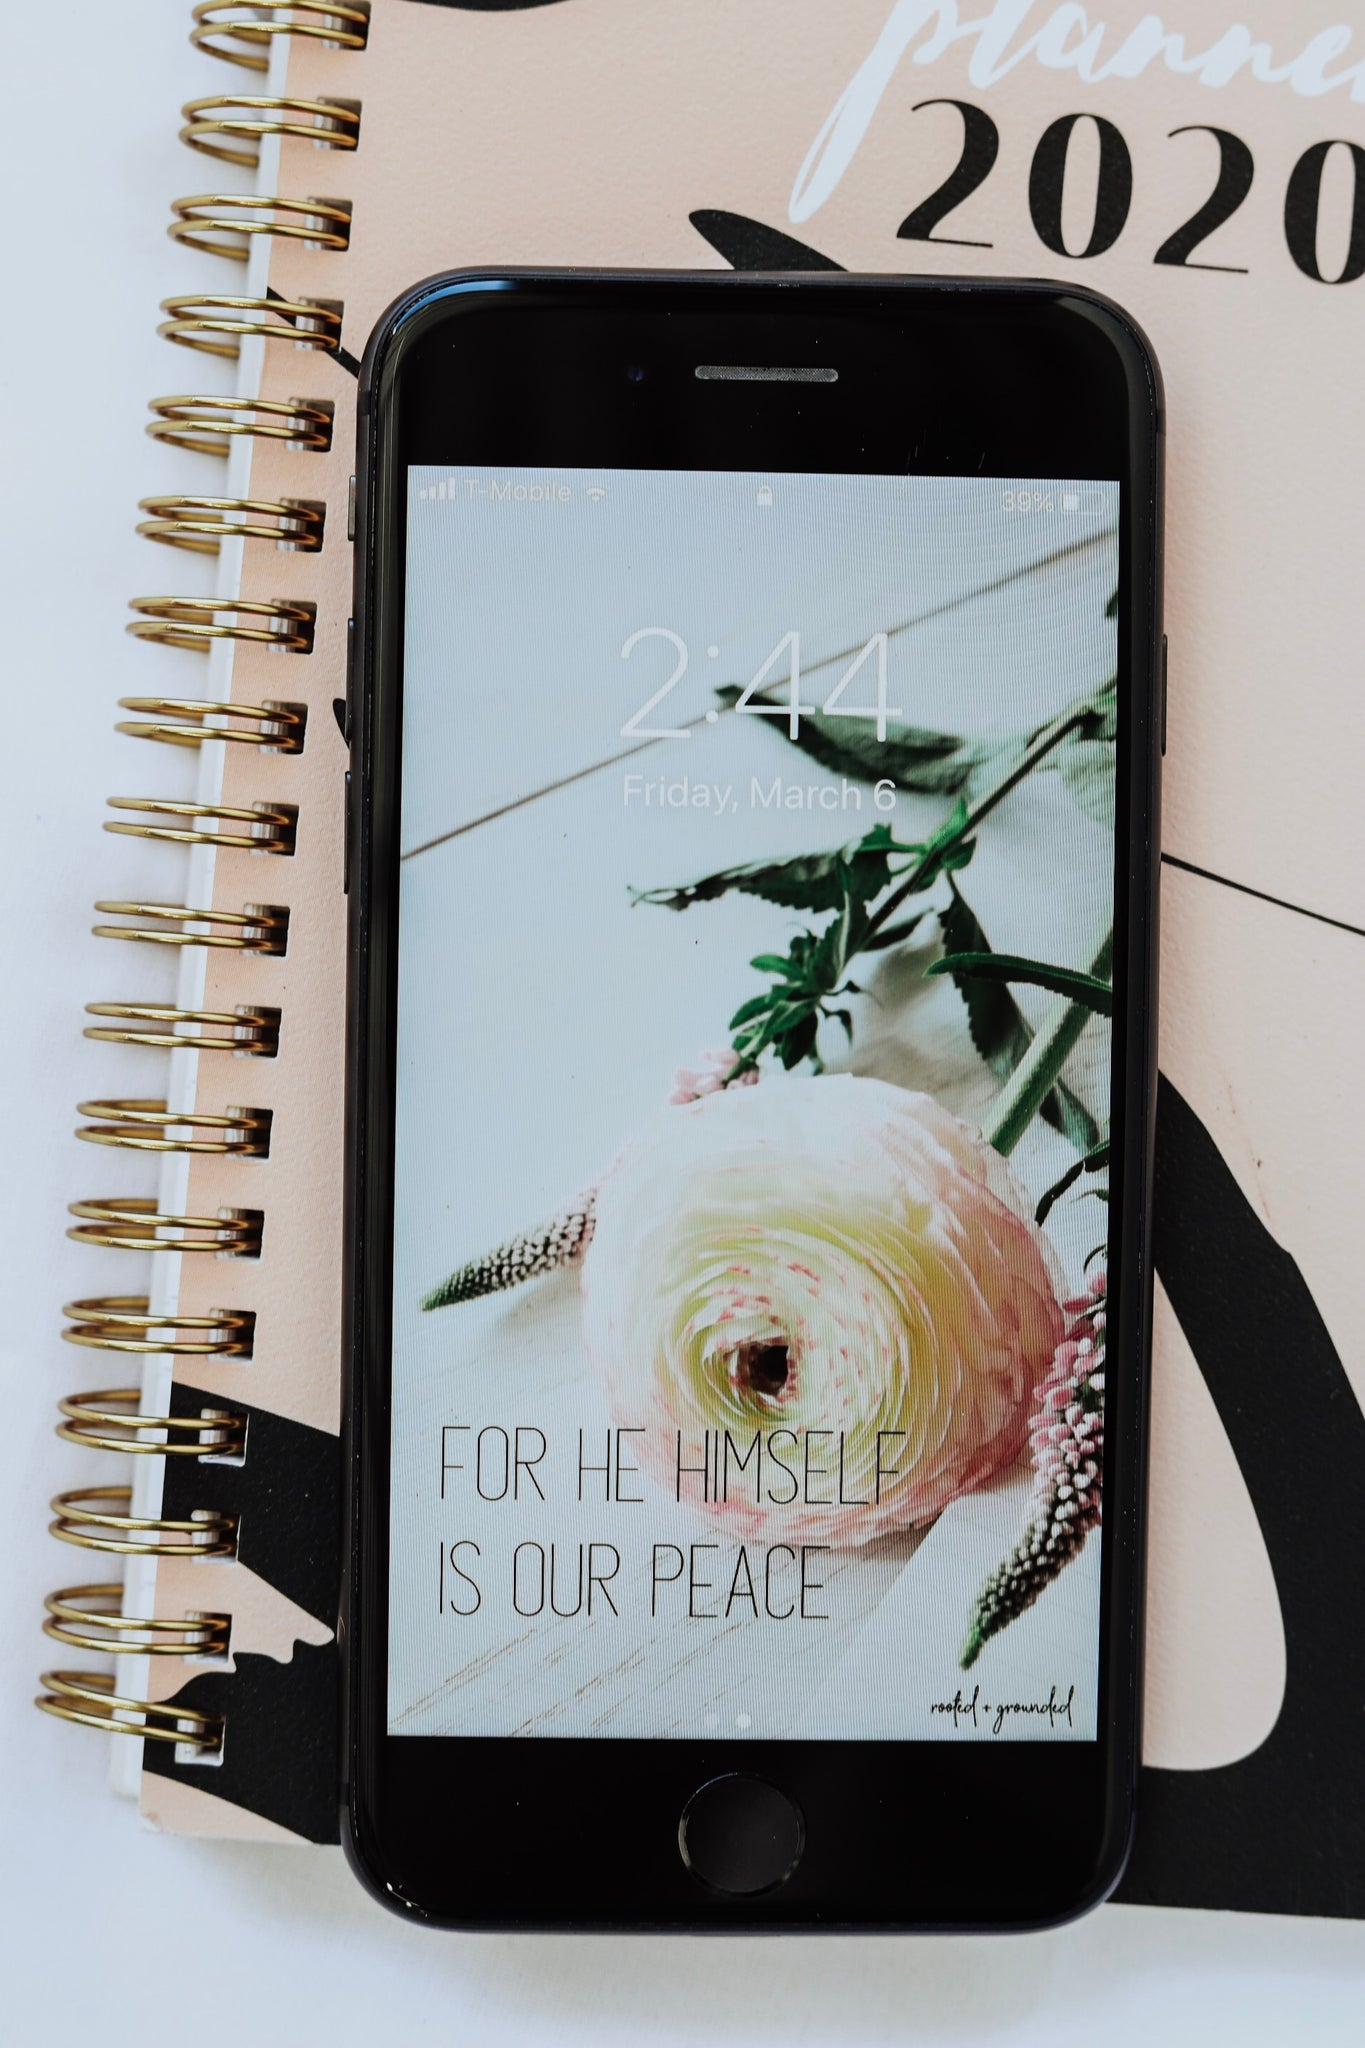 For He Himself Is Our Peace Christian iPhone Wallpaper